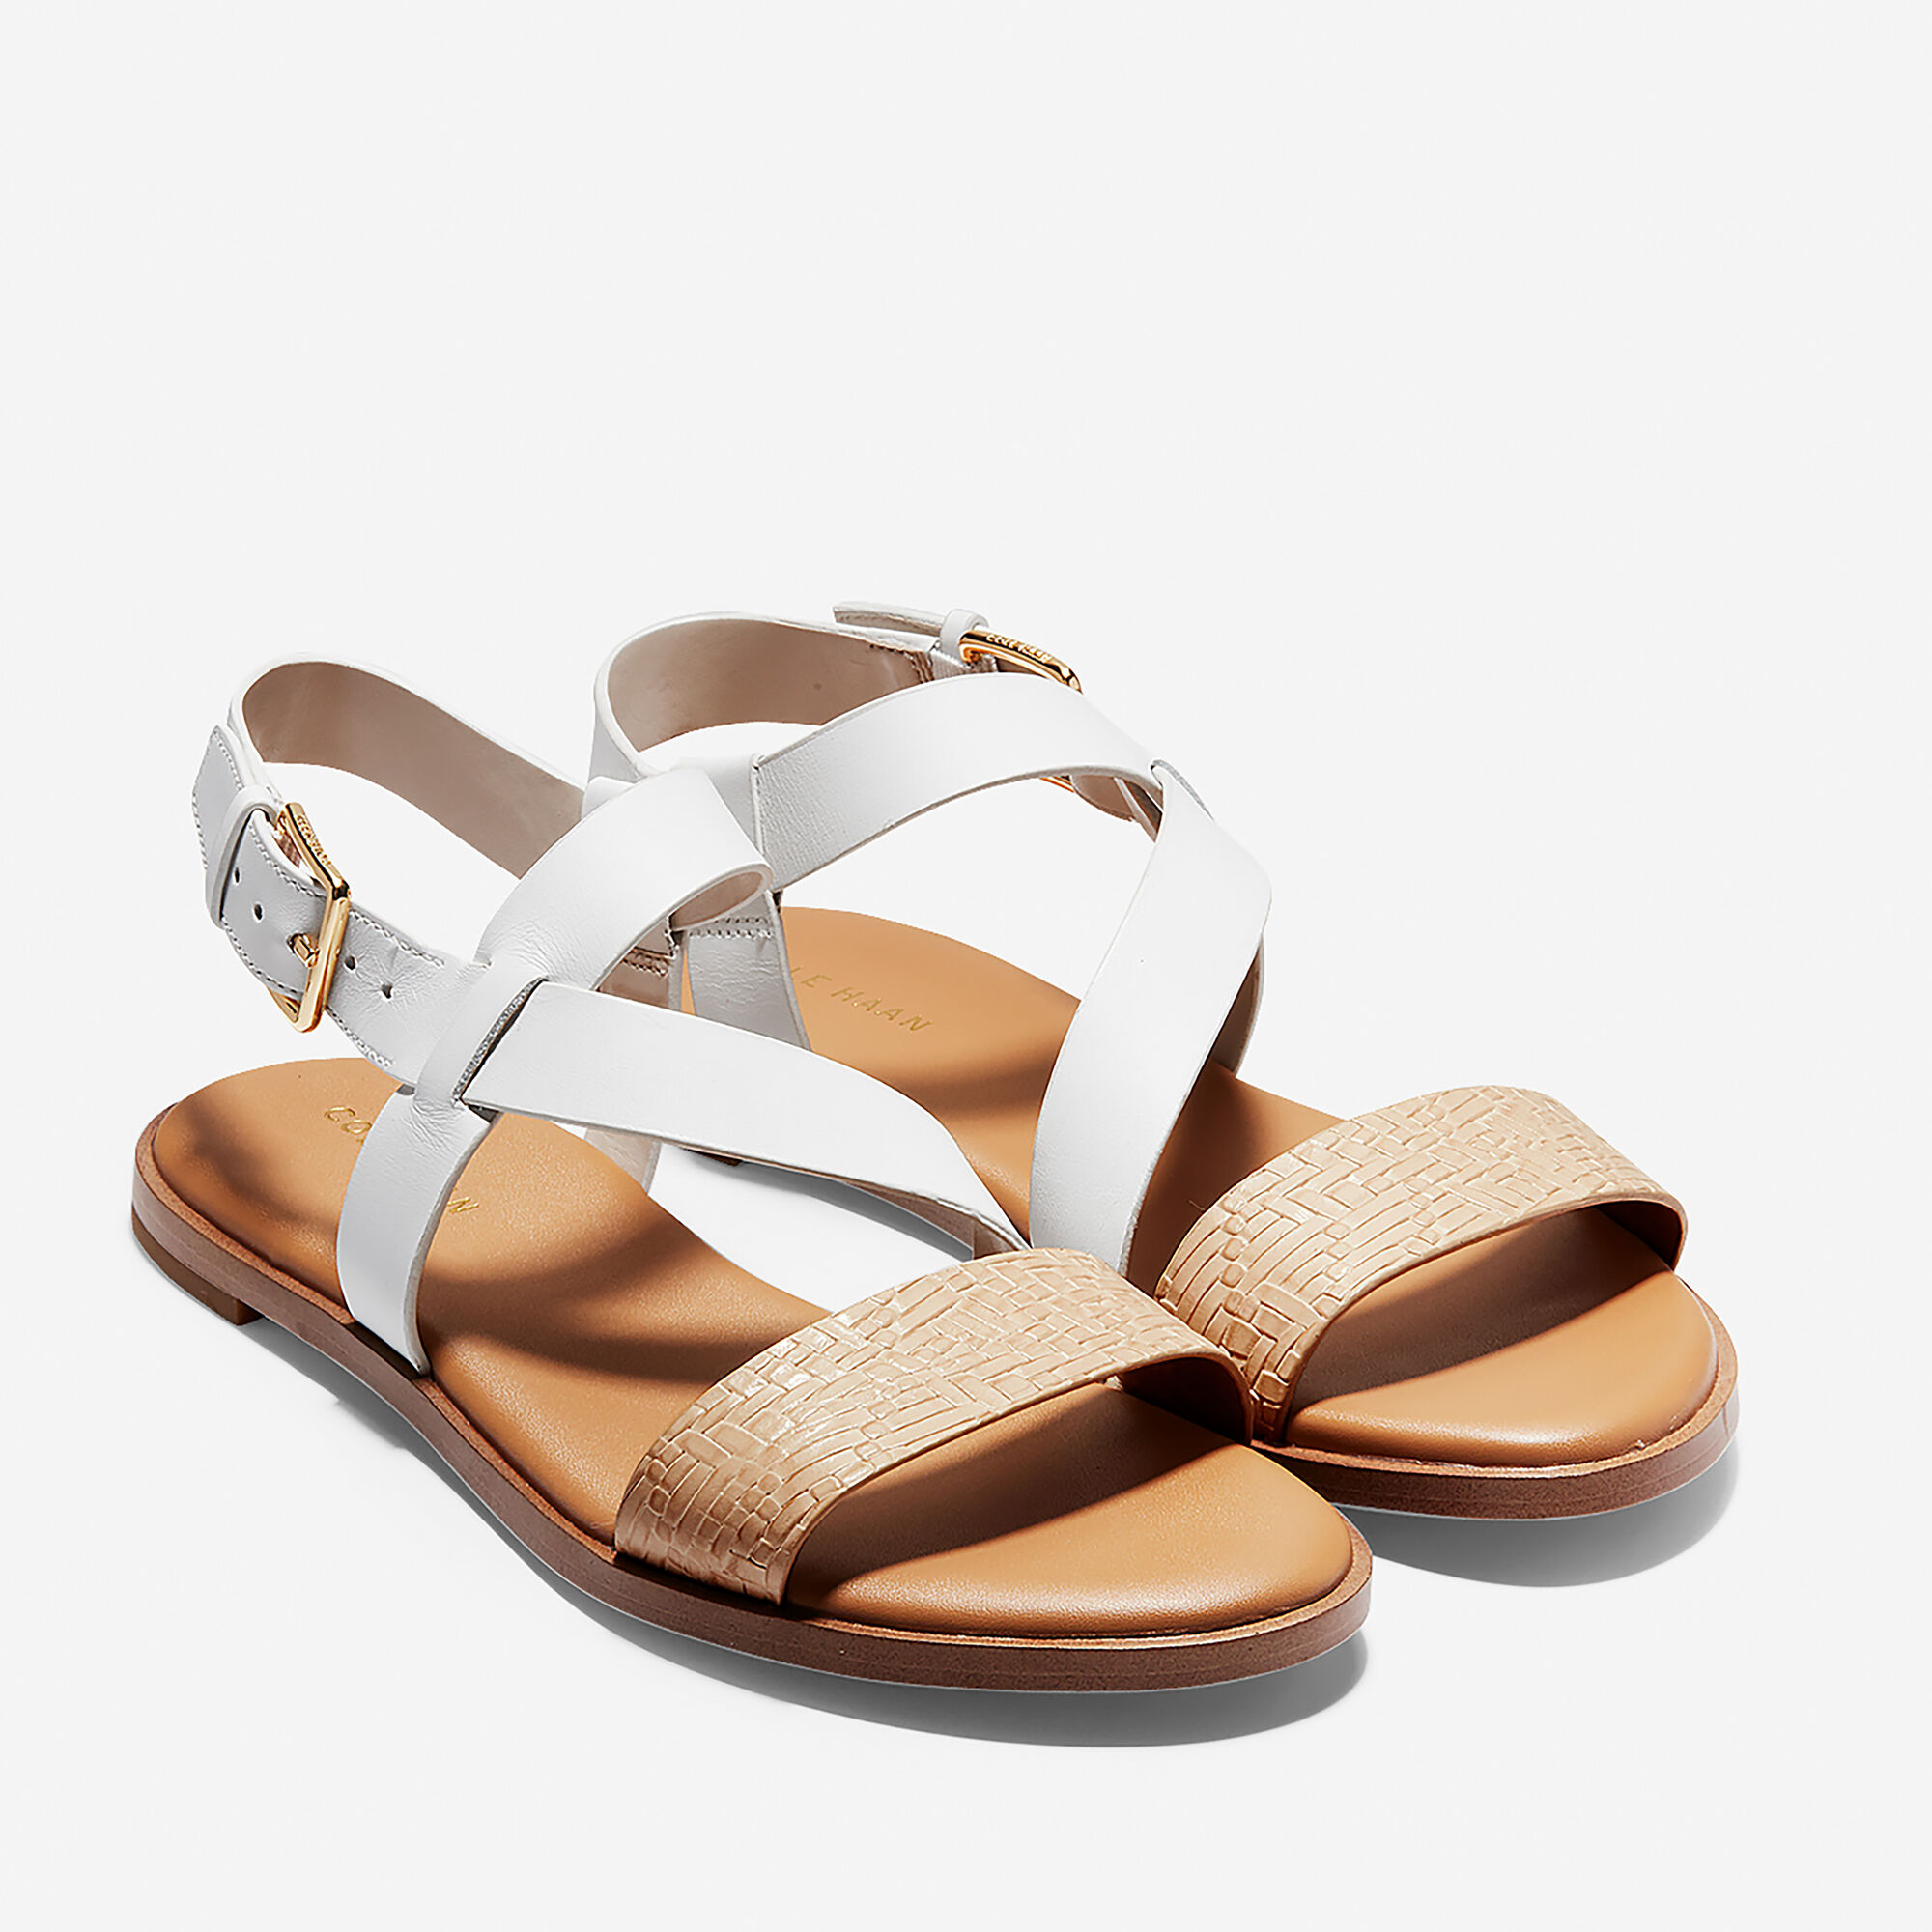 b5cddad2beeb02 ... Findra Strappy Sandal  Findra Strappy Sandal